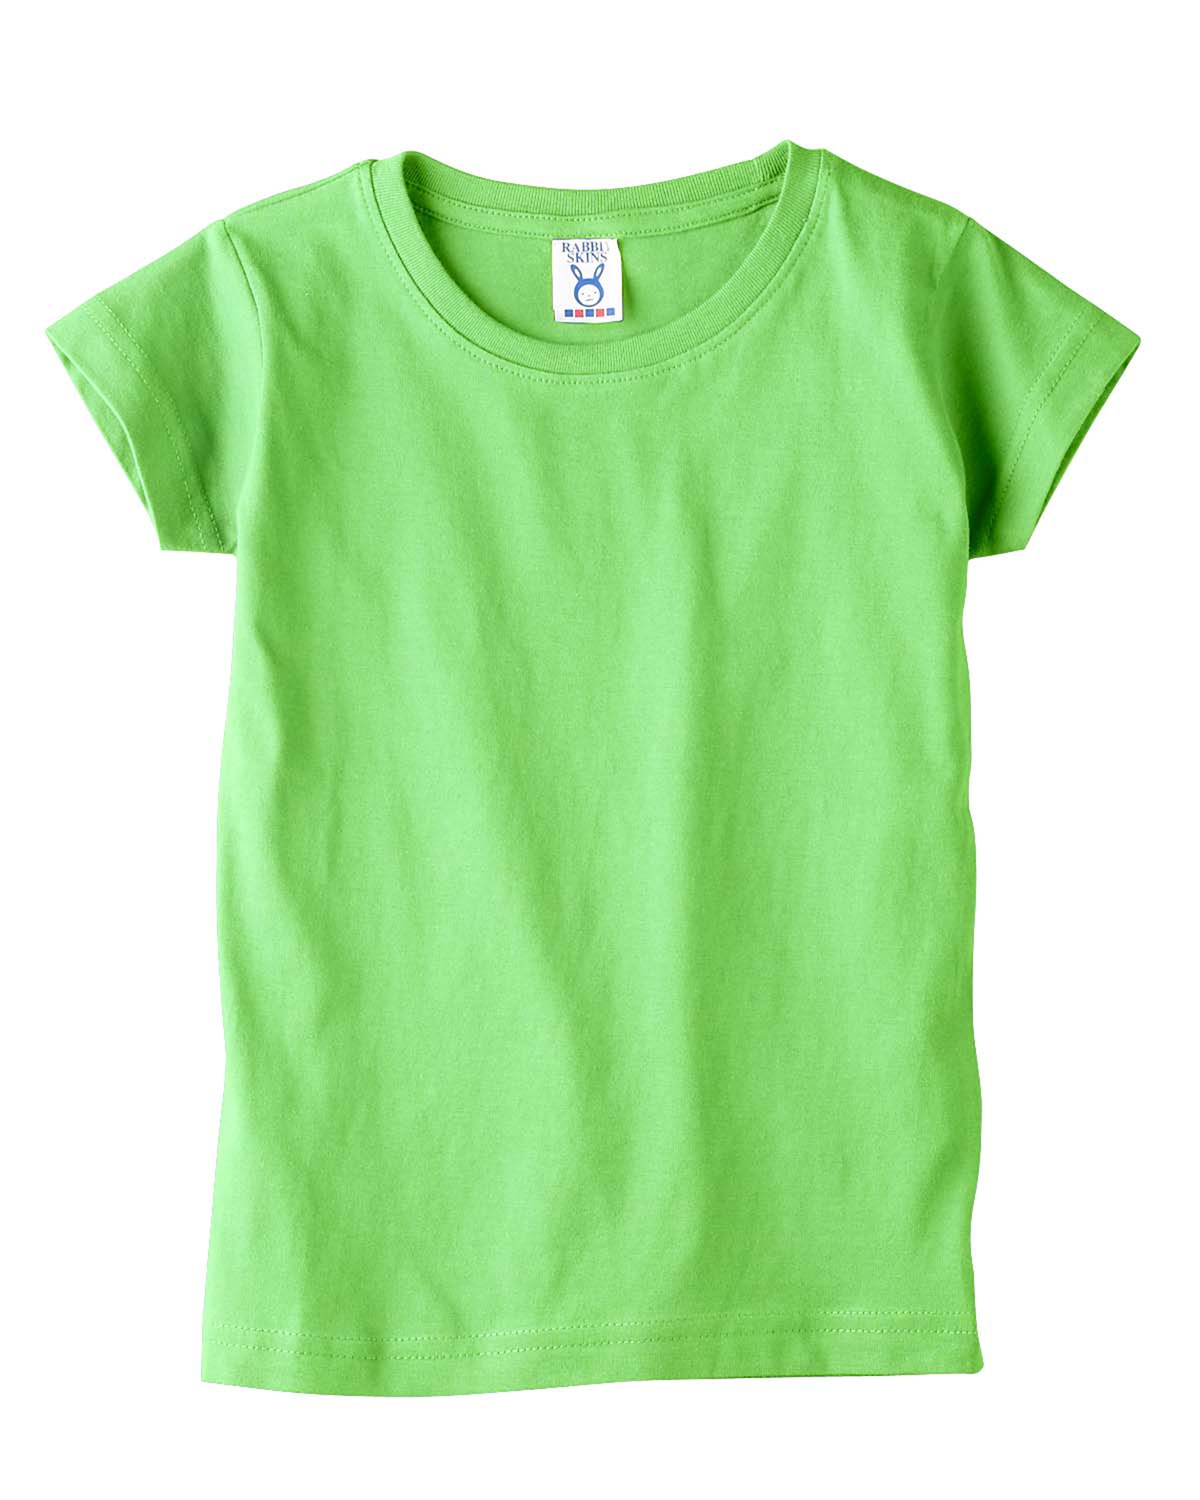 Rabbit Skins-Toddler'S 4.5 Oz. Girls' Fine Jersey Longer Length T-Shirt-3316